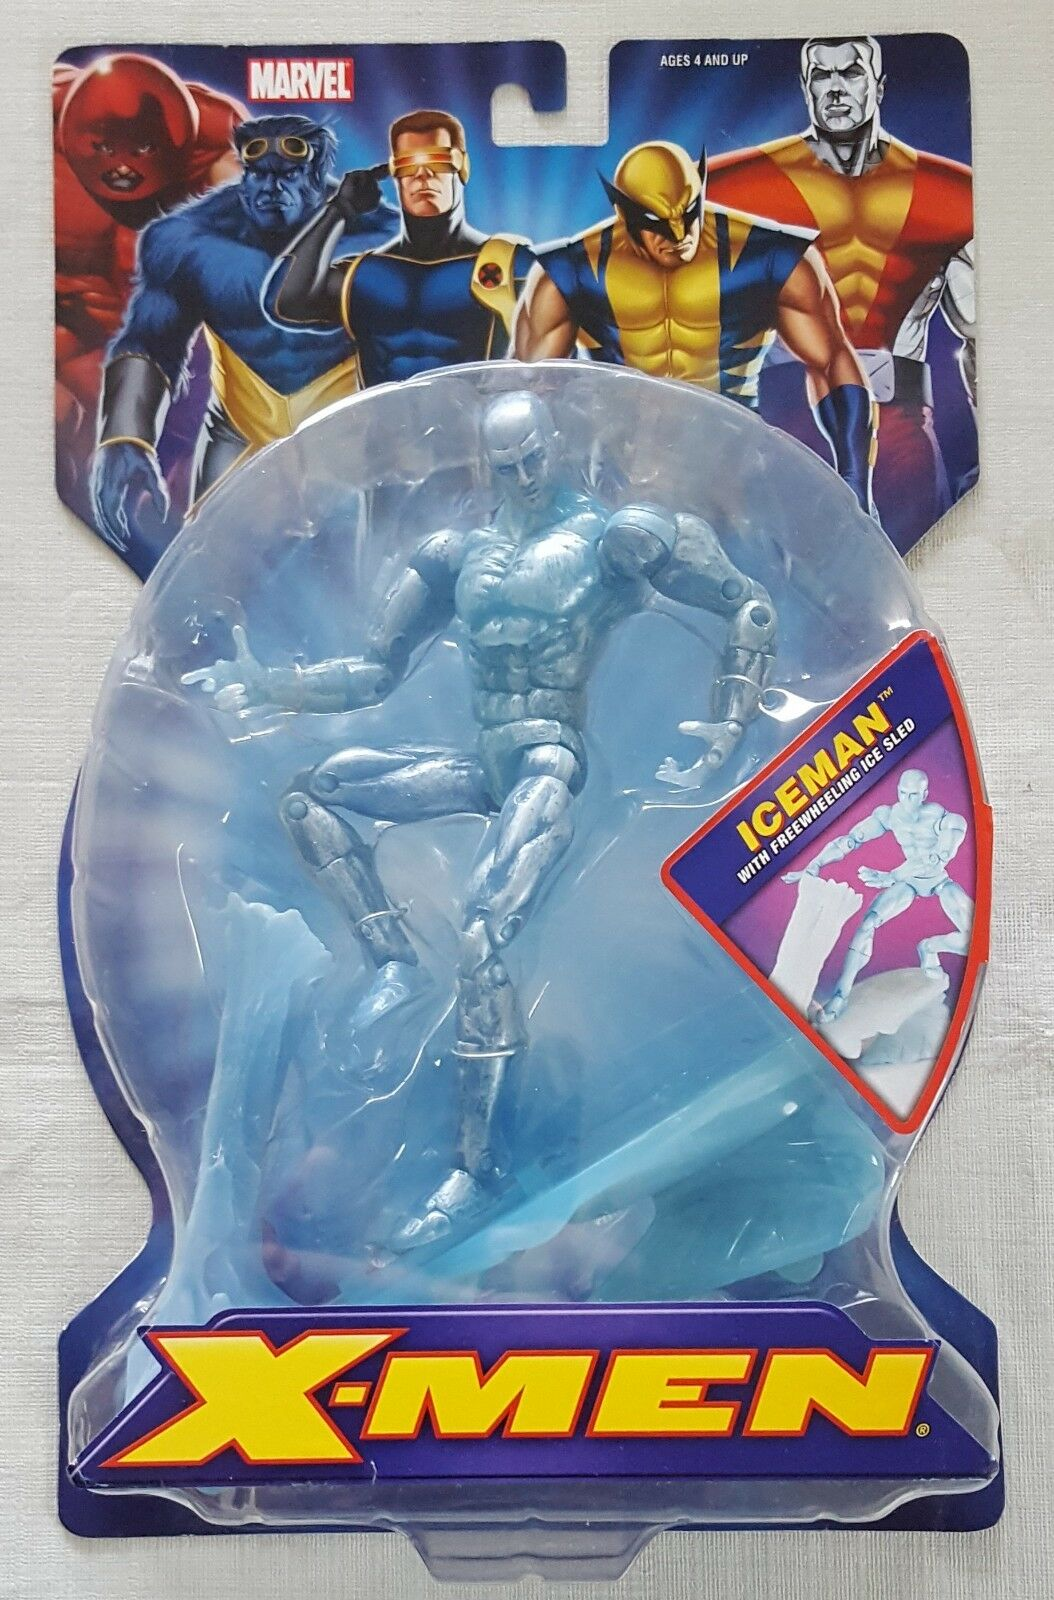 Marvel - legenden  x - men  - klassiker iceman action - figur - toybiz